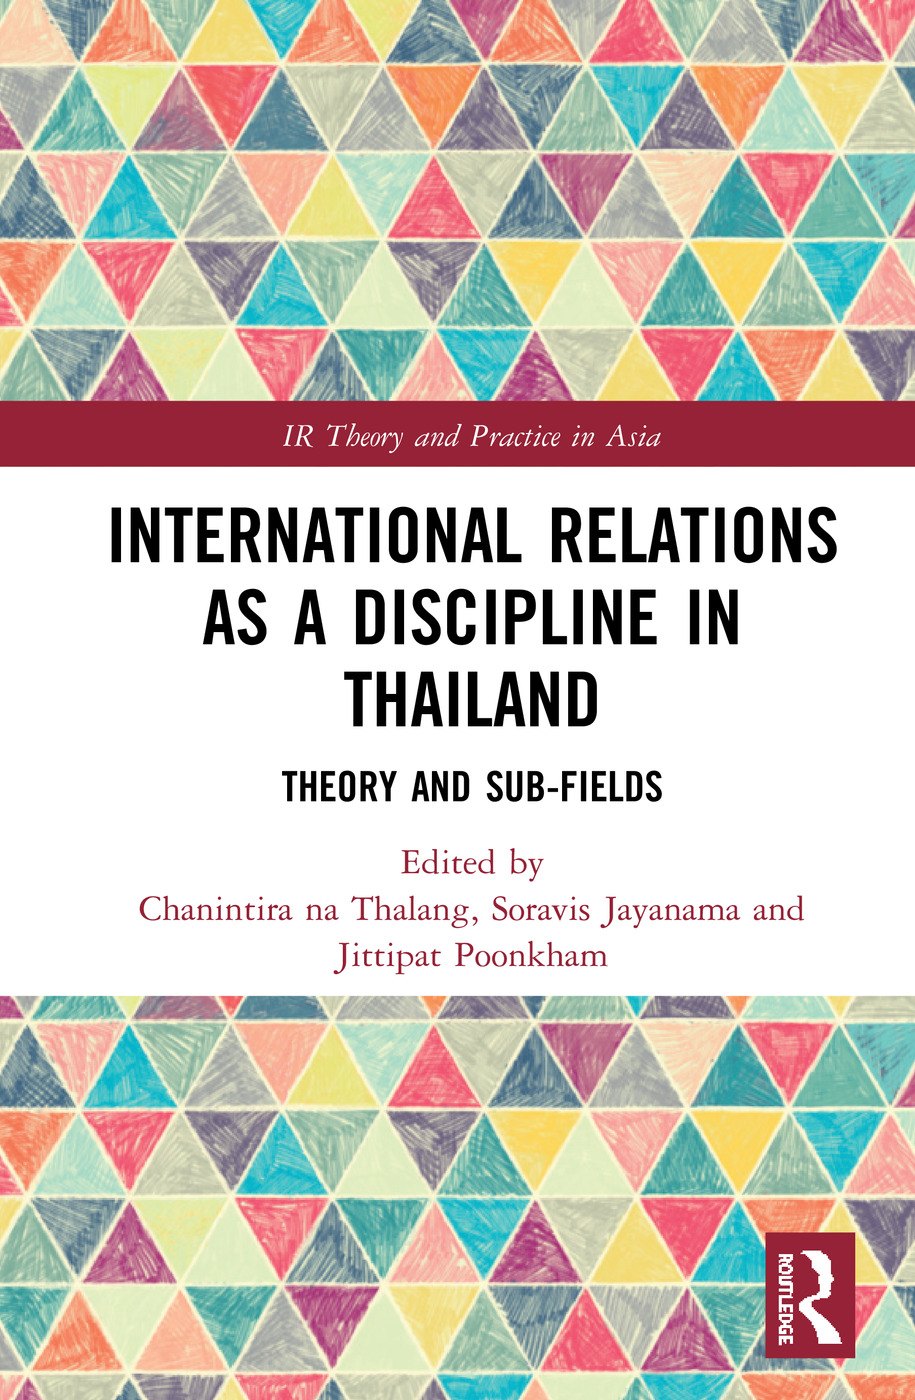 International Relations as a Discipline in Thailand: Theory and Sub-fields book cover